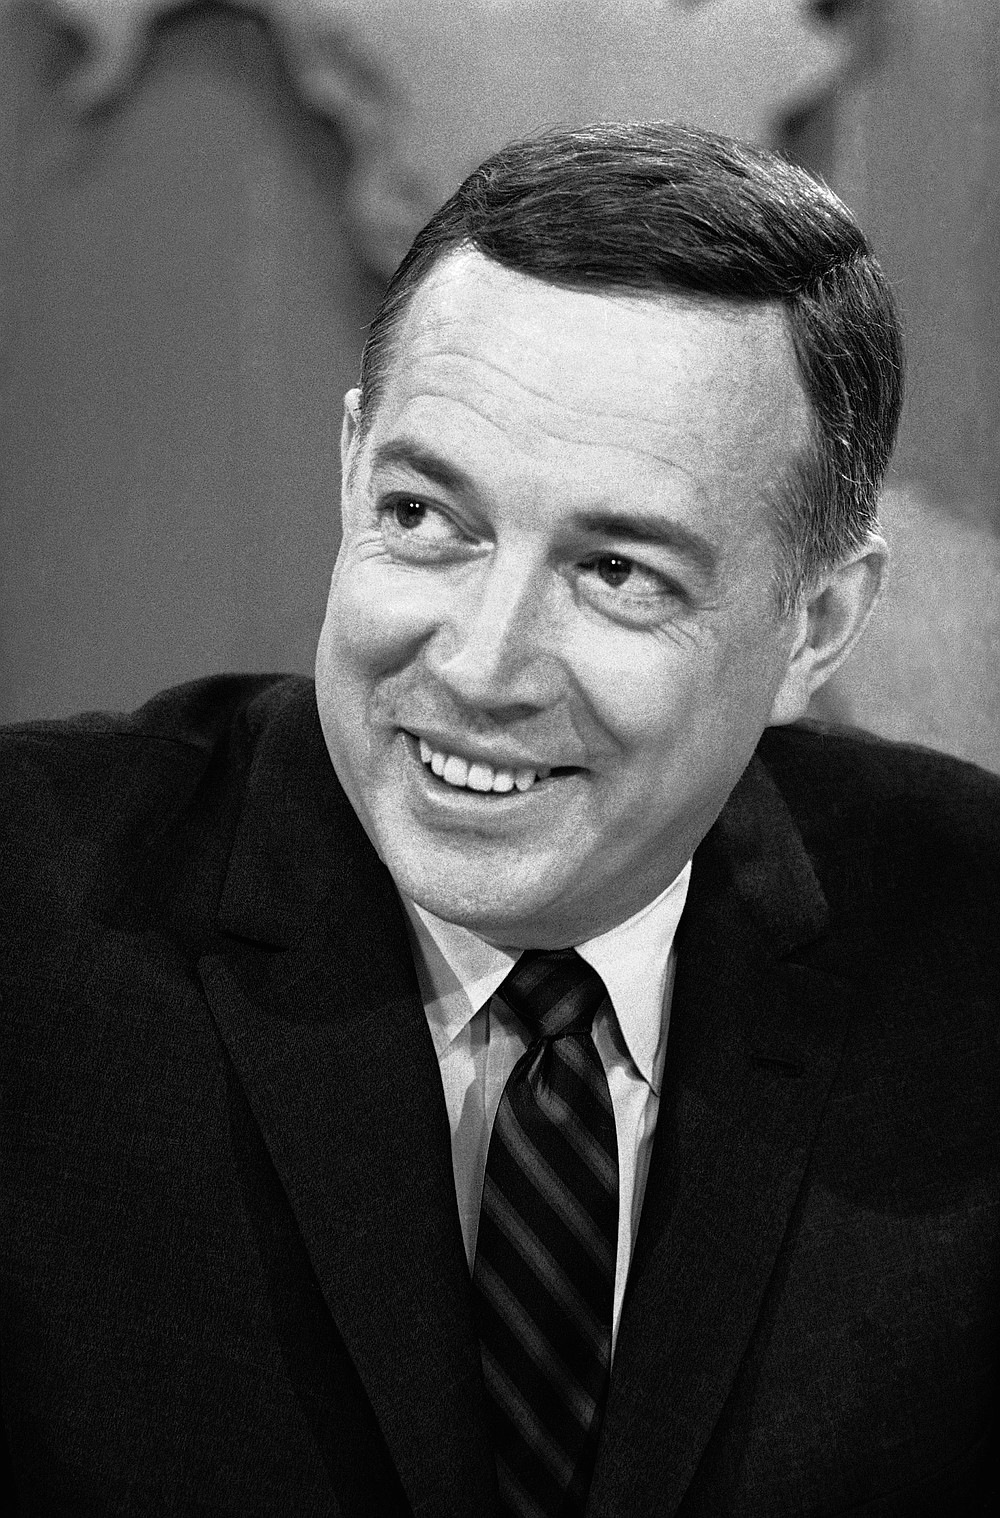 """FILE - In this March 10, 1966 file photo, Hugh Downs hosts the """"Today""""show on NBC.  Downs, a genial and near-constant presence on television from the 1950s through the 1990s, has died. His family said Downs died of natural causes Wednesday, July 1, 2020, in Scottsdale, Ariz. He was 99. Downs was a host of the """"Today"""" show on NBC, worked on the """"Tonight"""" show when Jack Paar was in charge, and hosted the long-running game show """"Concentration."""" (AP Photo/Jack Kanthal, File)"""